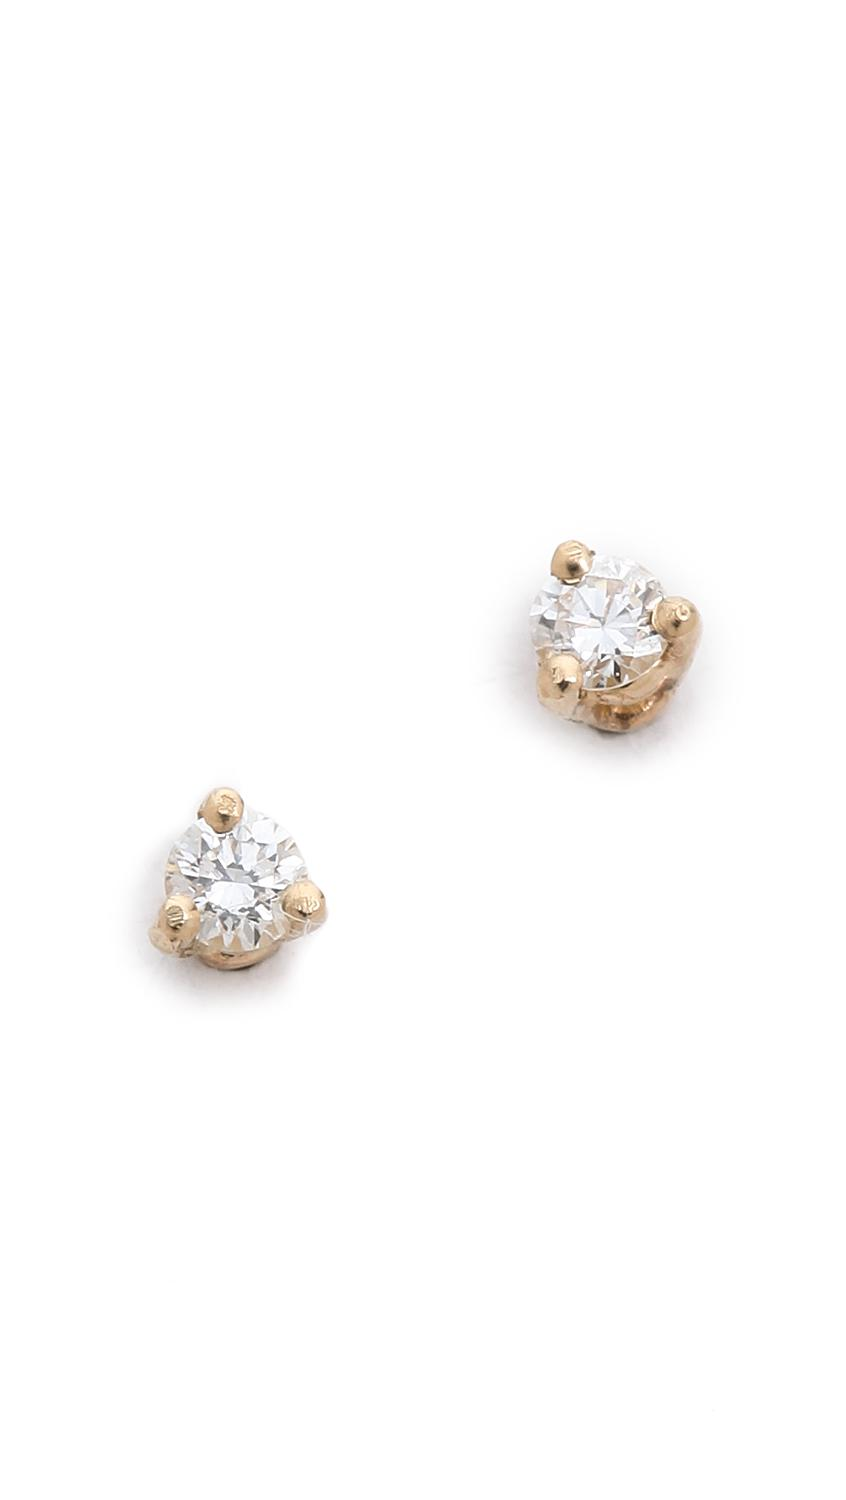 Blanca Monrós Gómez 14k Gold Little Black Diamond Stud Earrings DW3ixbs